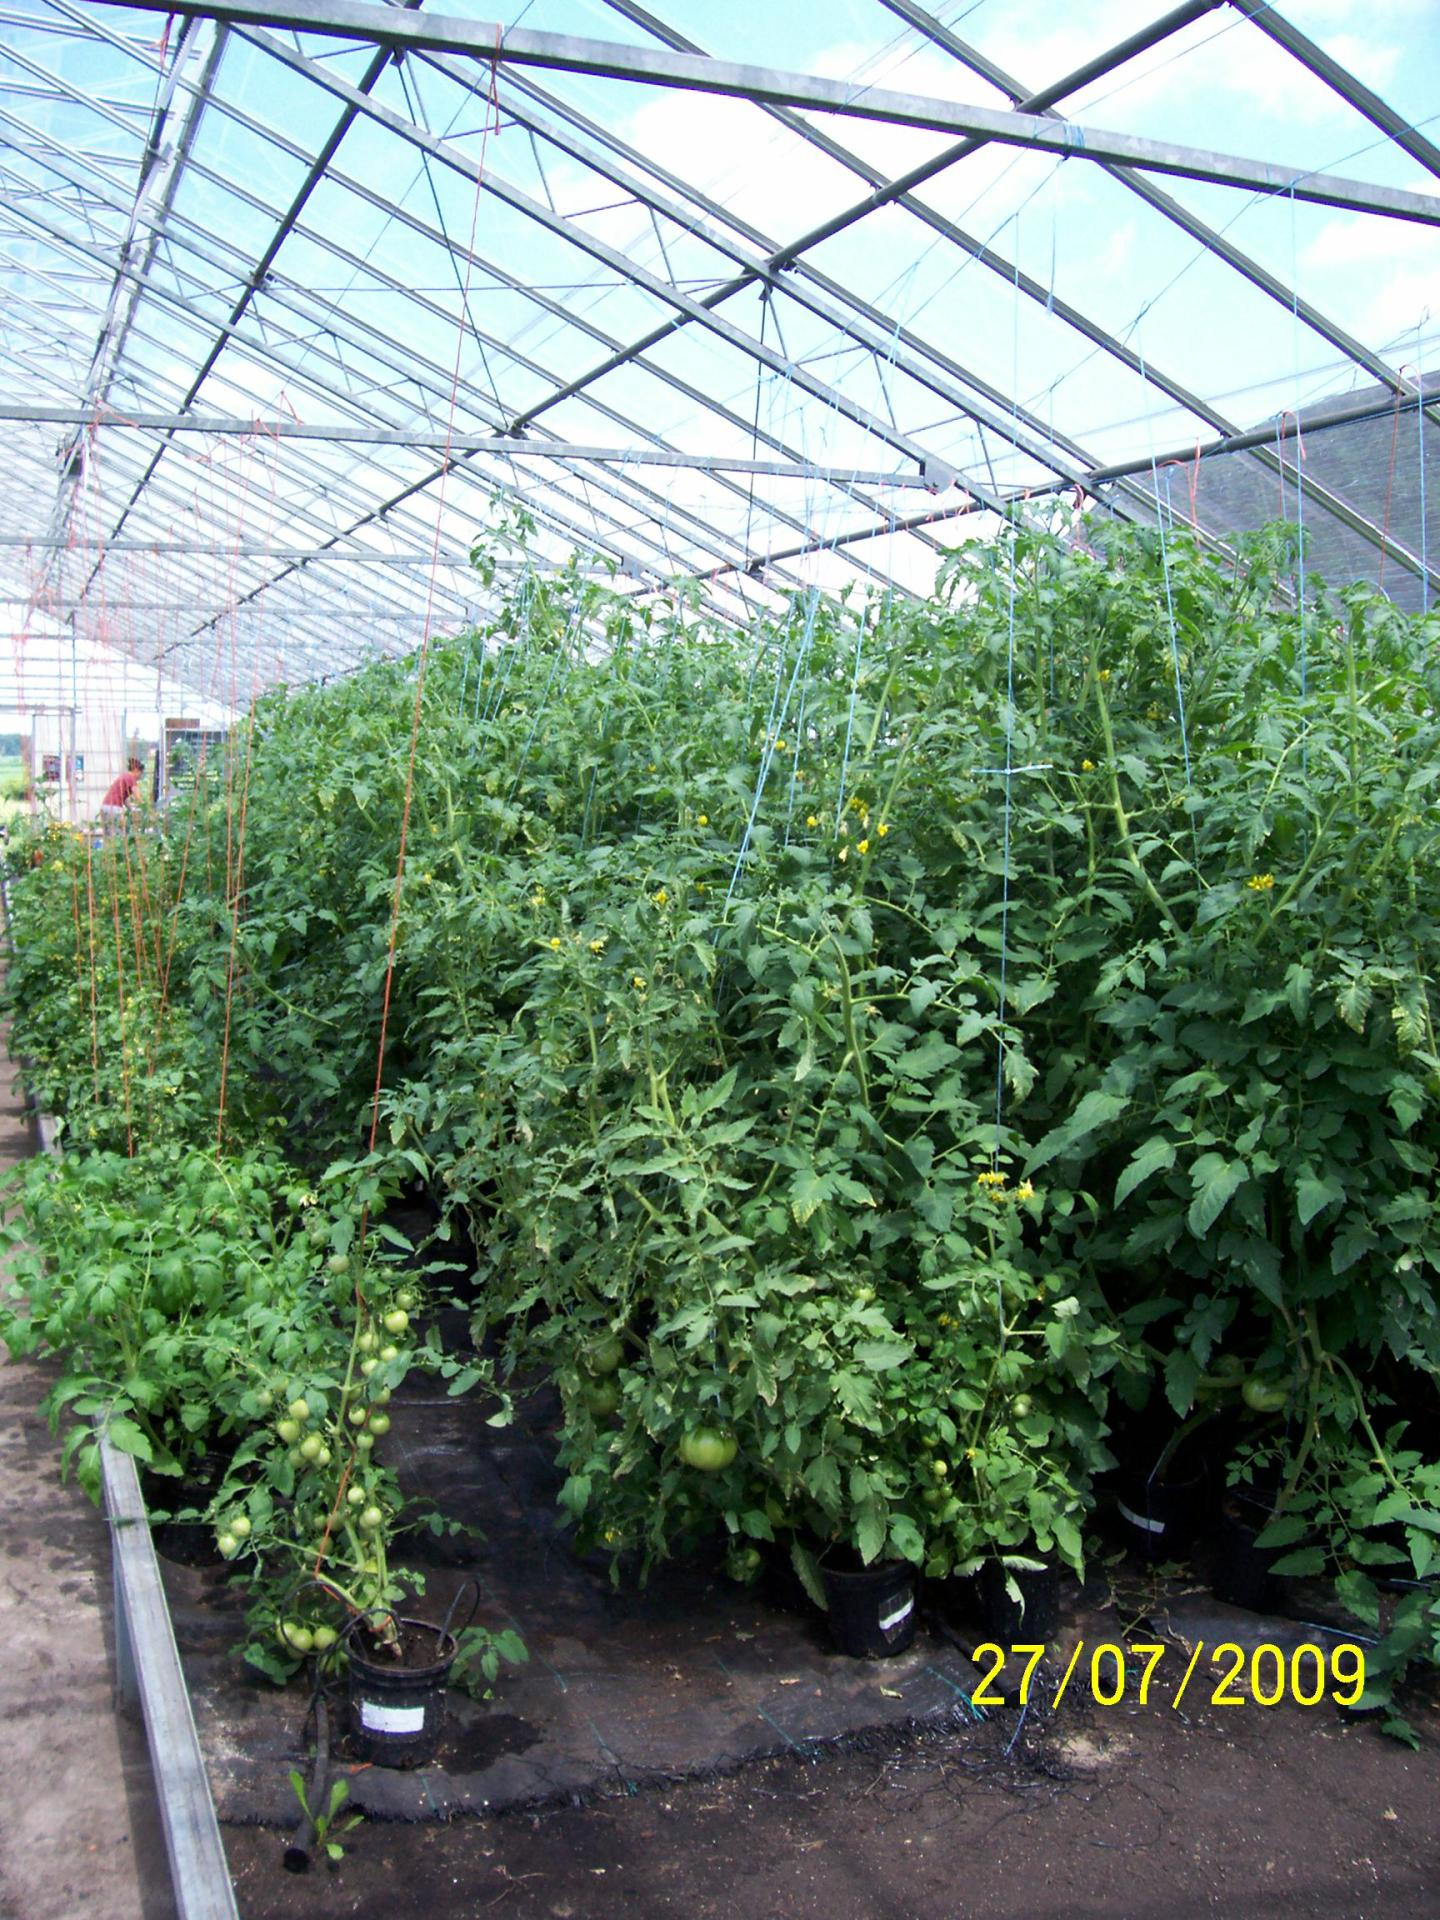 Tall Vine Organic beefsteak training experinece and product line